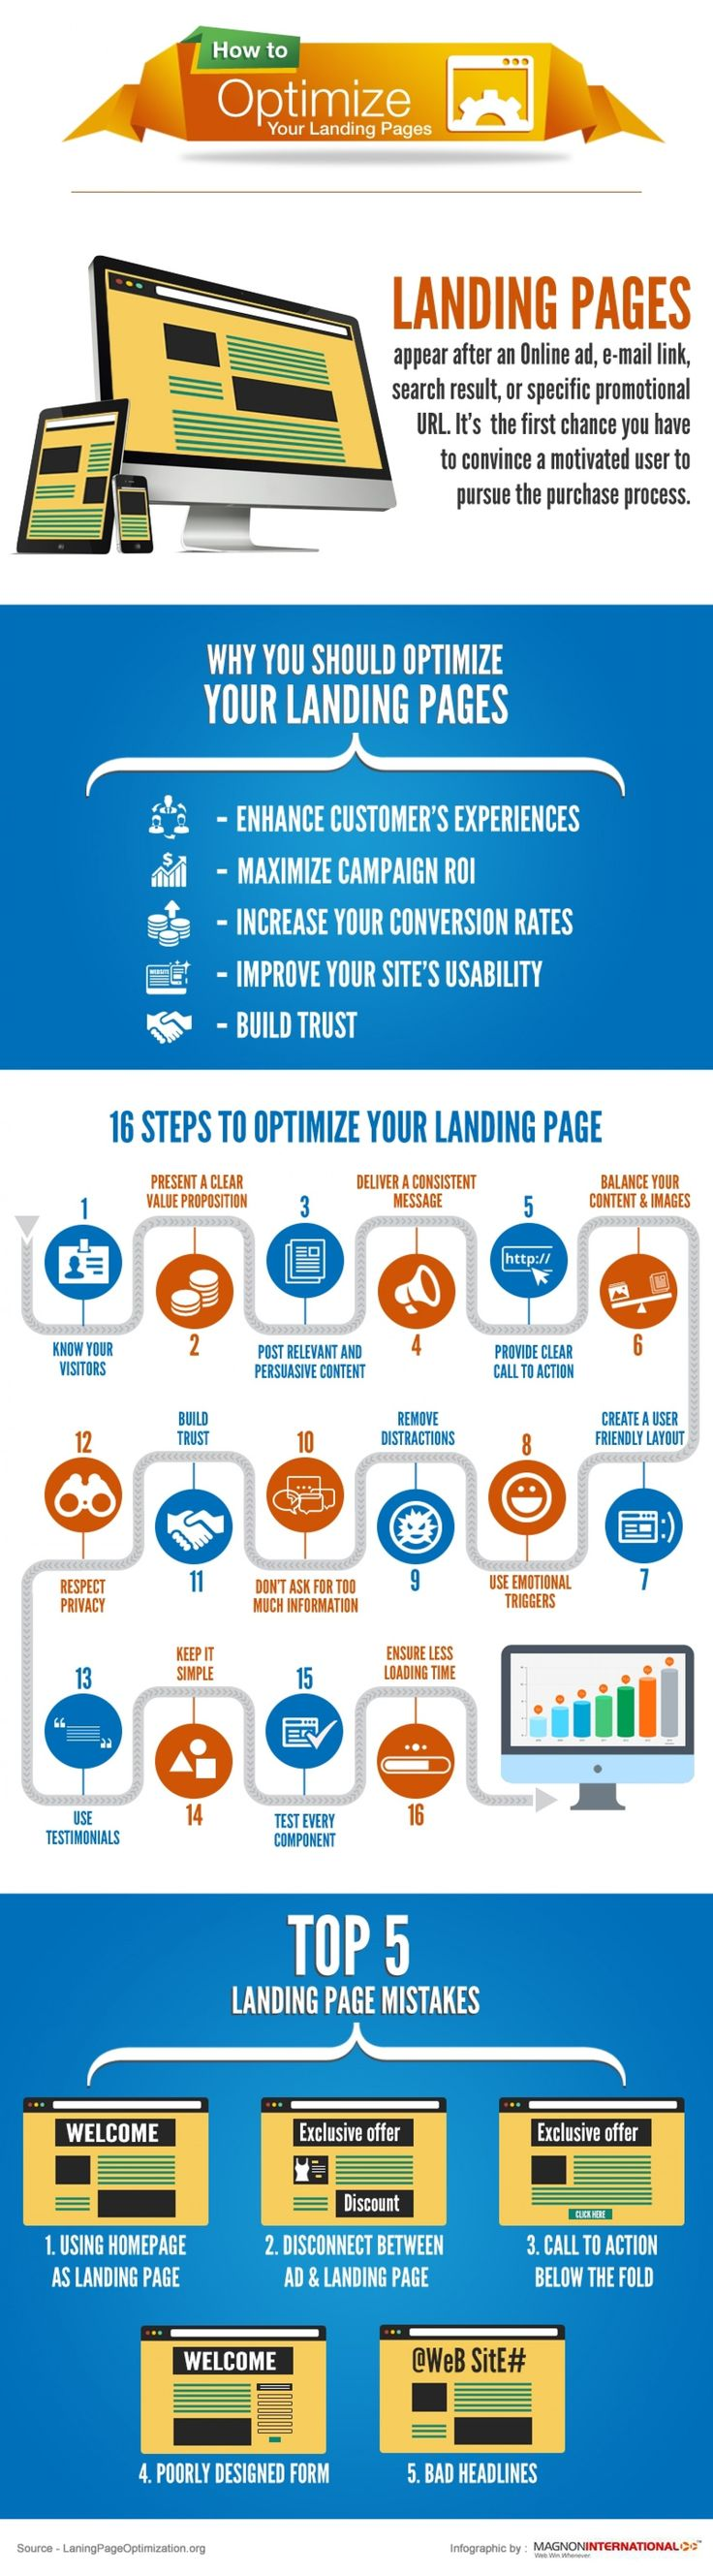 How to Optimize Your #LandingPages?